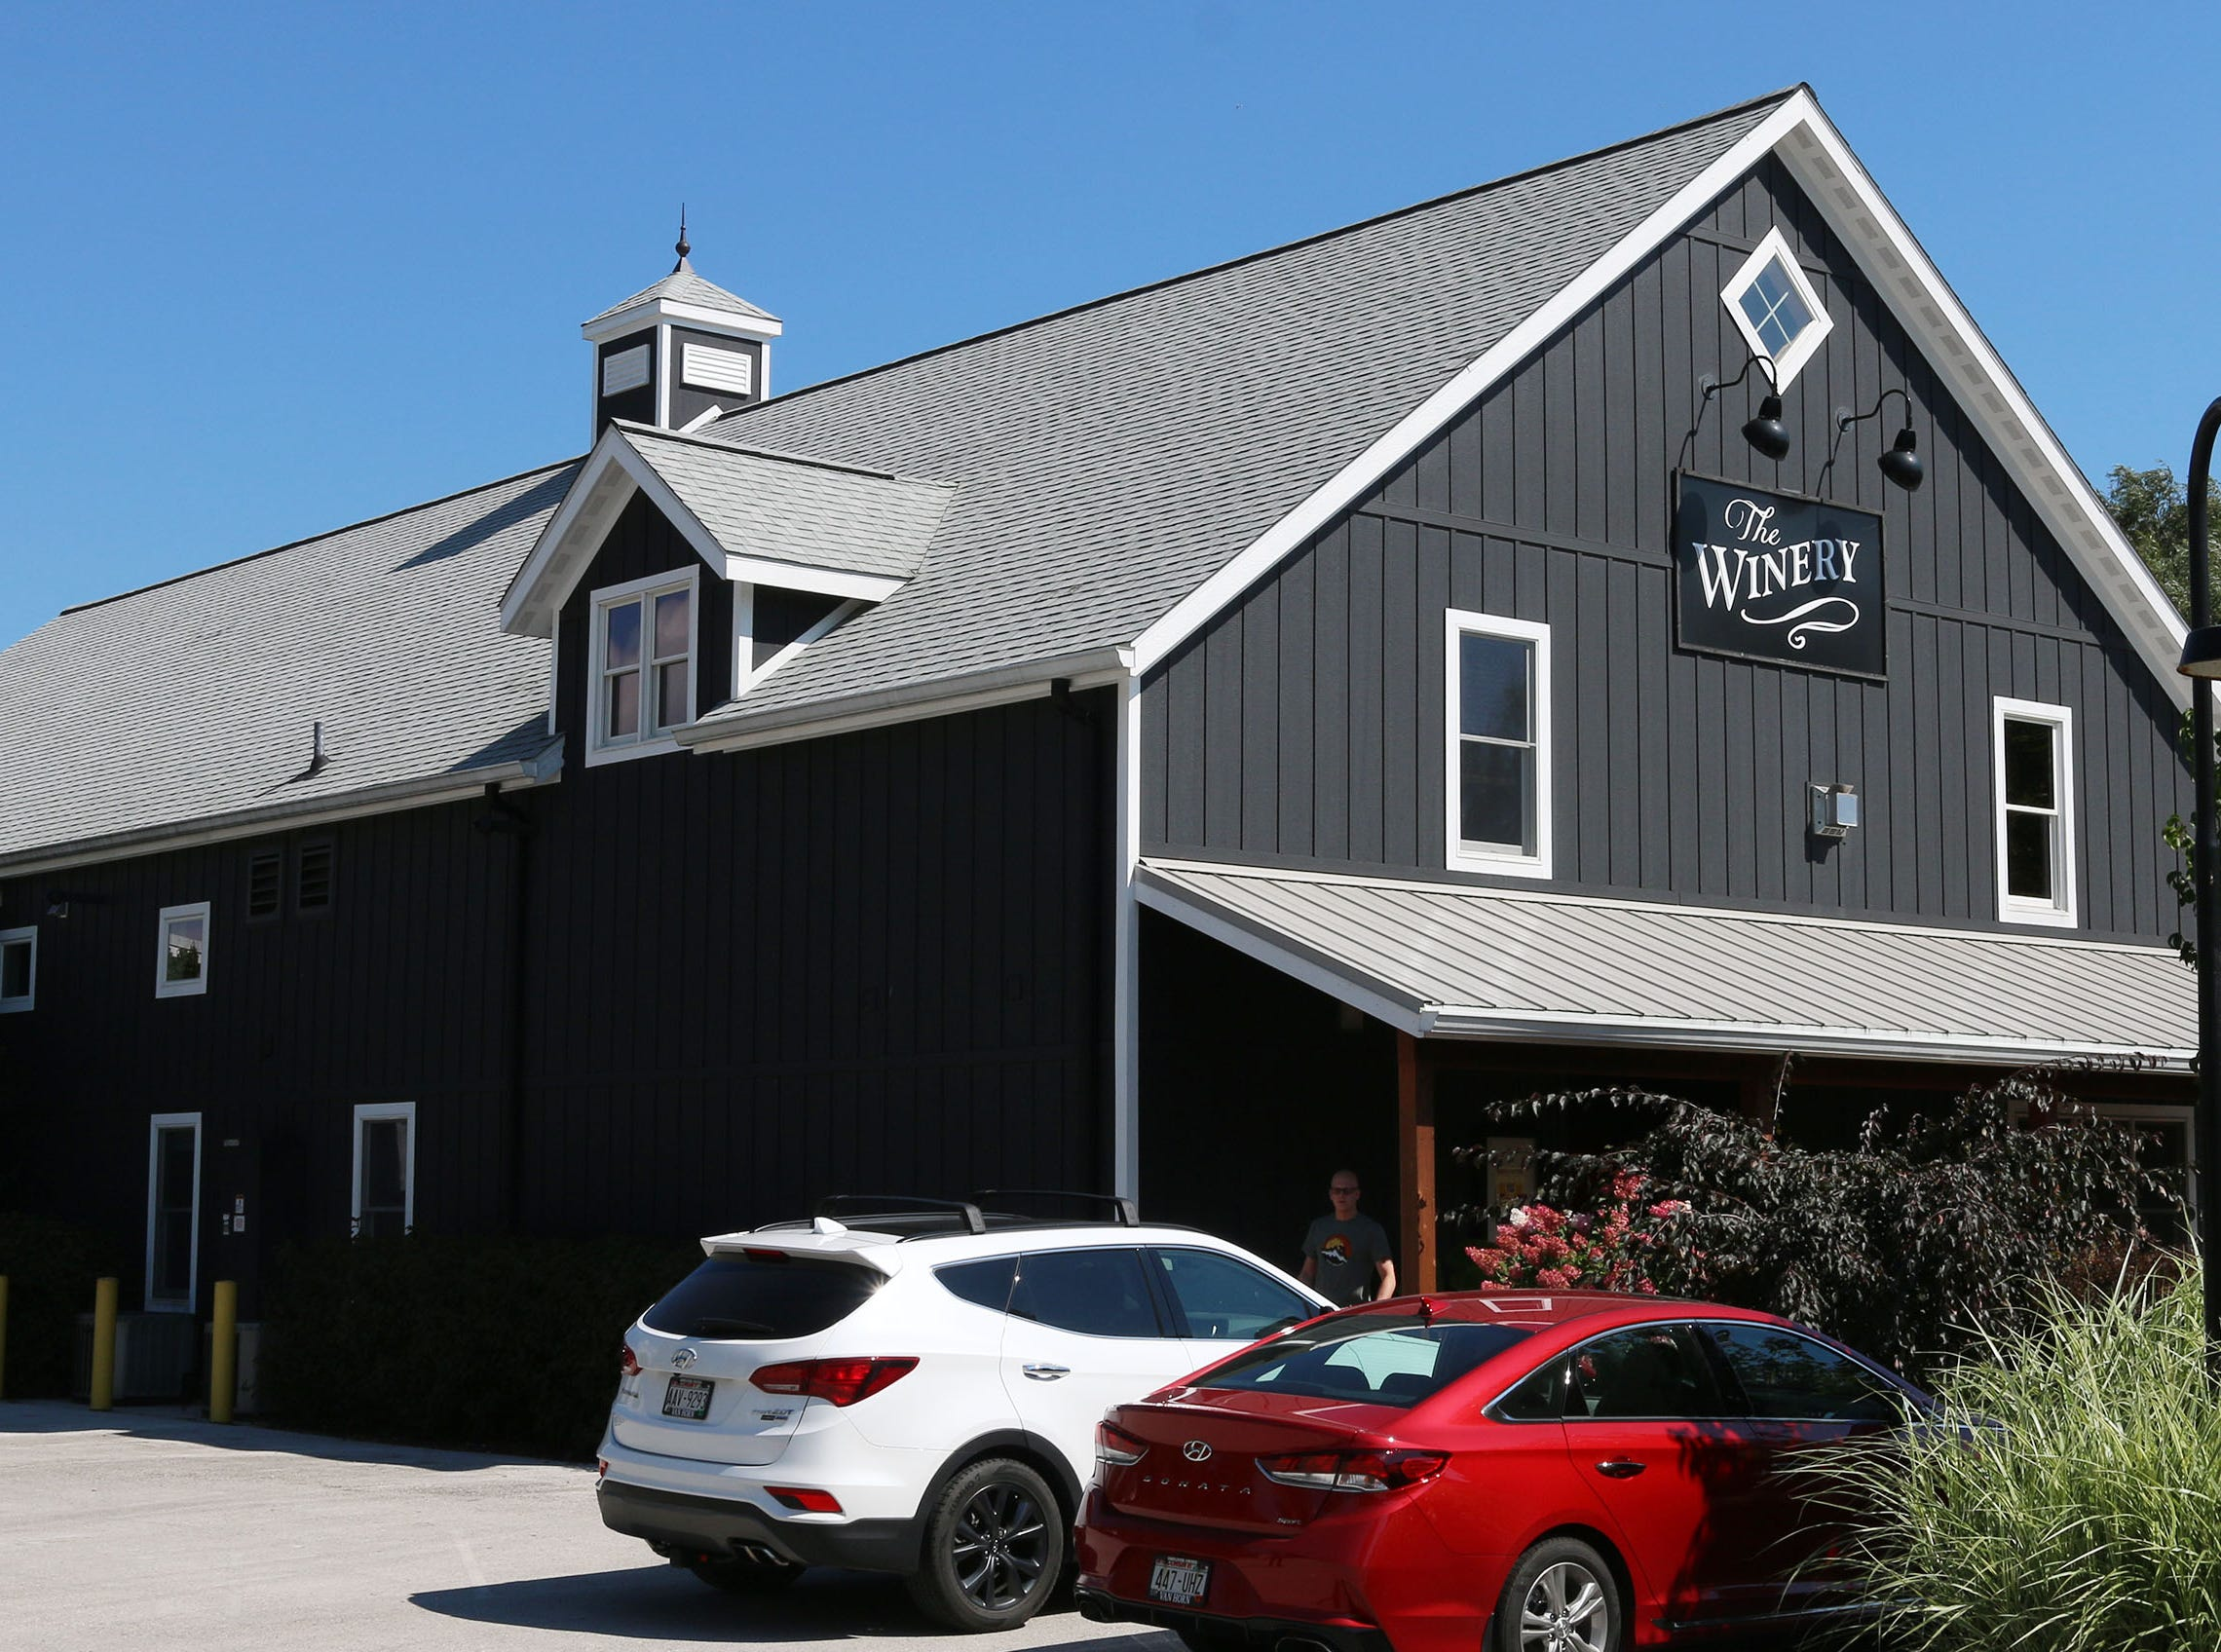 The exterior of the Winery building at The Blind Horse restaurant and winery, Thursday, September 13, 2018, in Kohler, Wis.